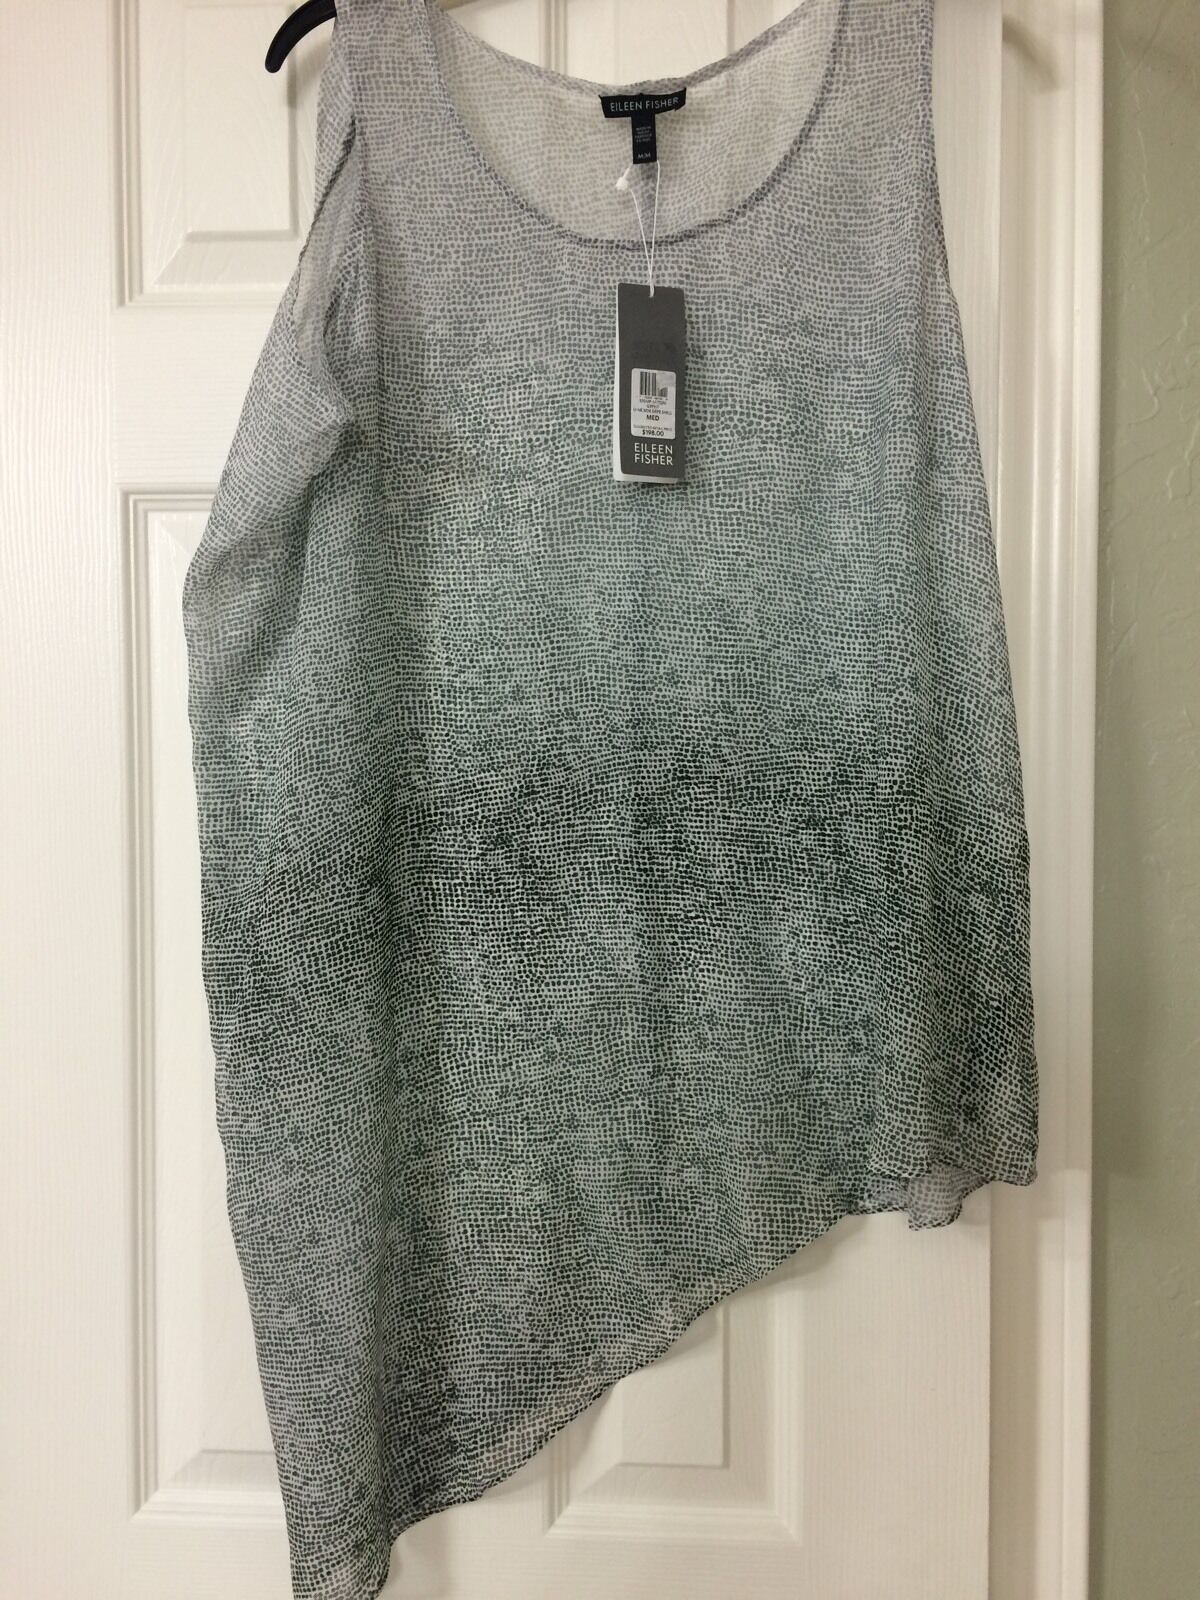 SMALL NWT Eileen Fisher Graphite Ombrot Thumbprint Silk Side Drape She'll